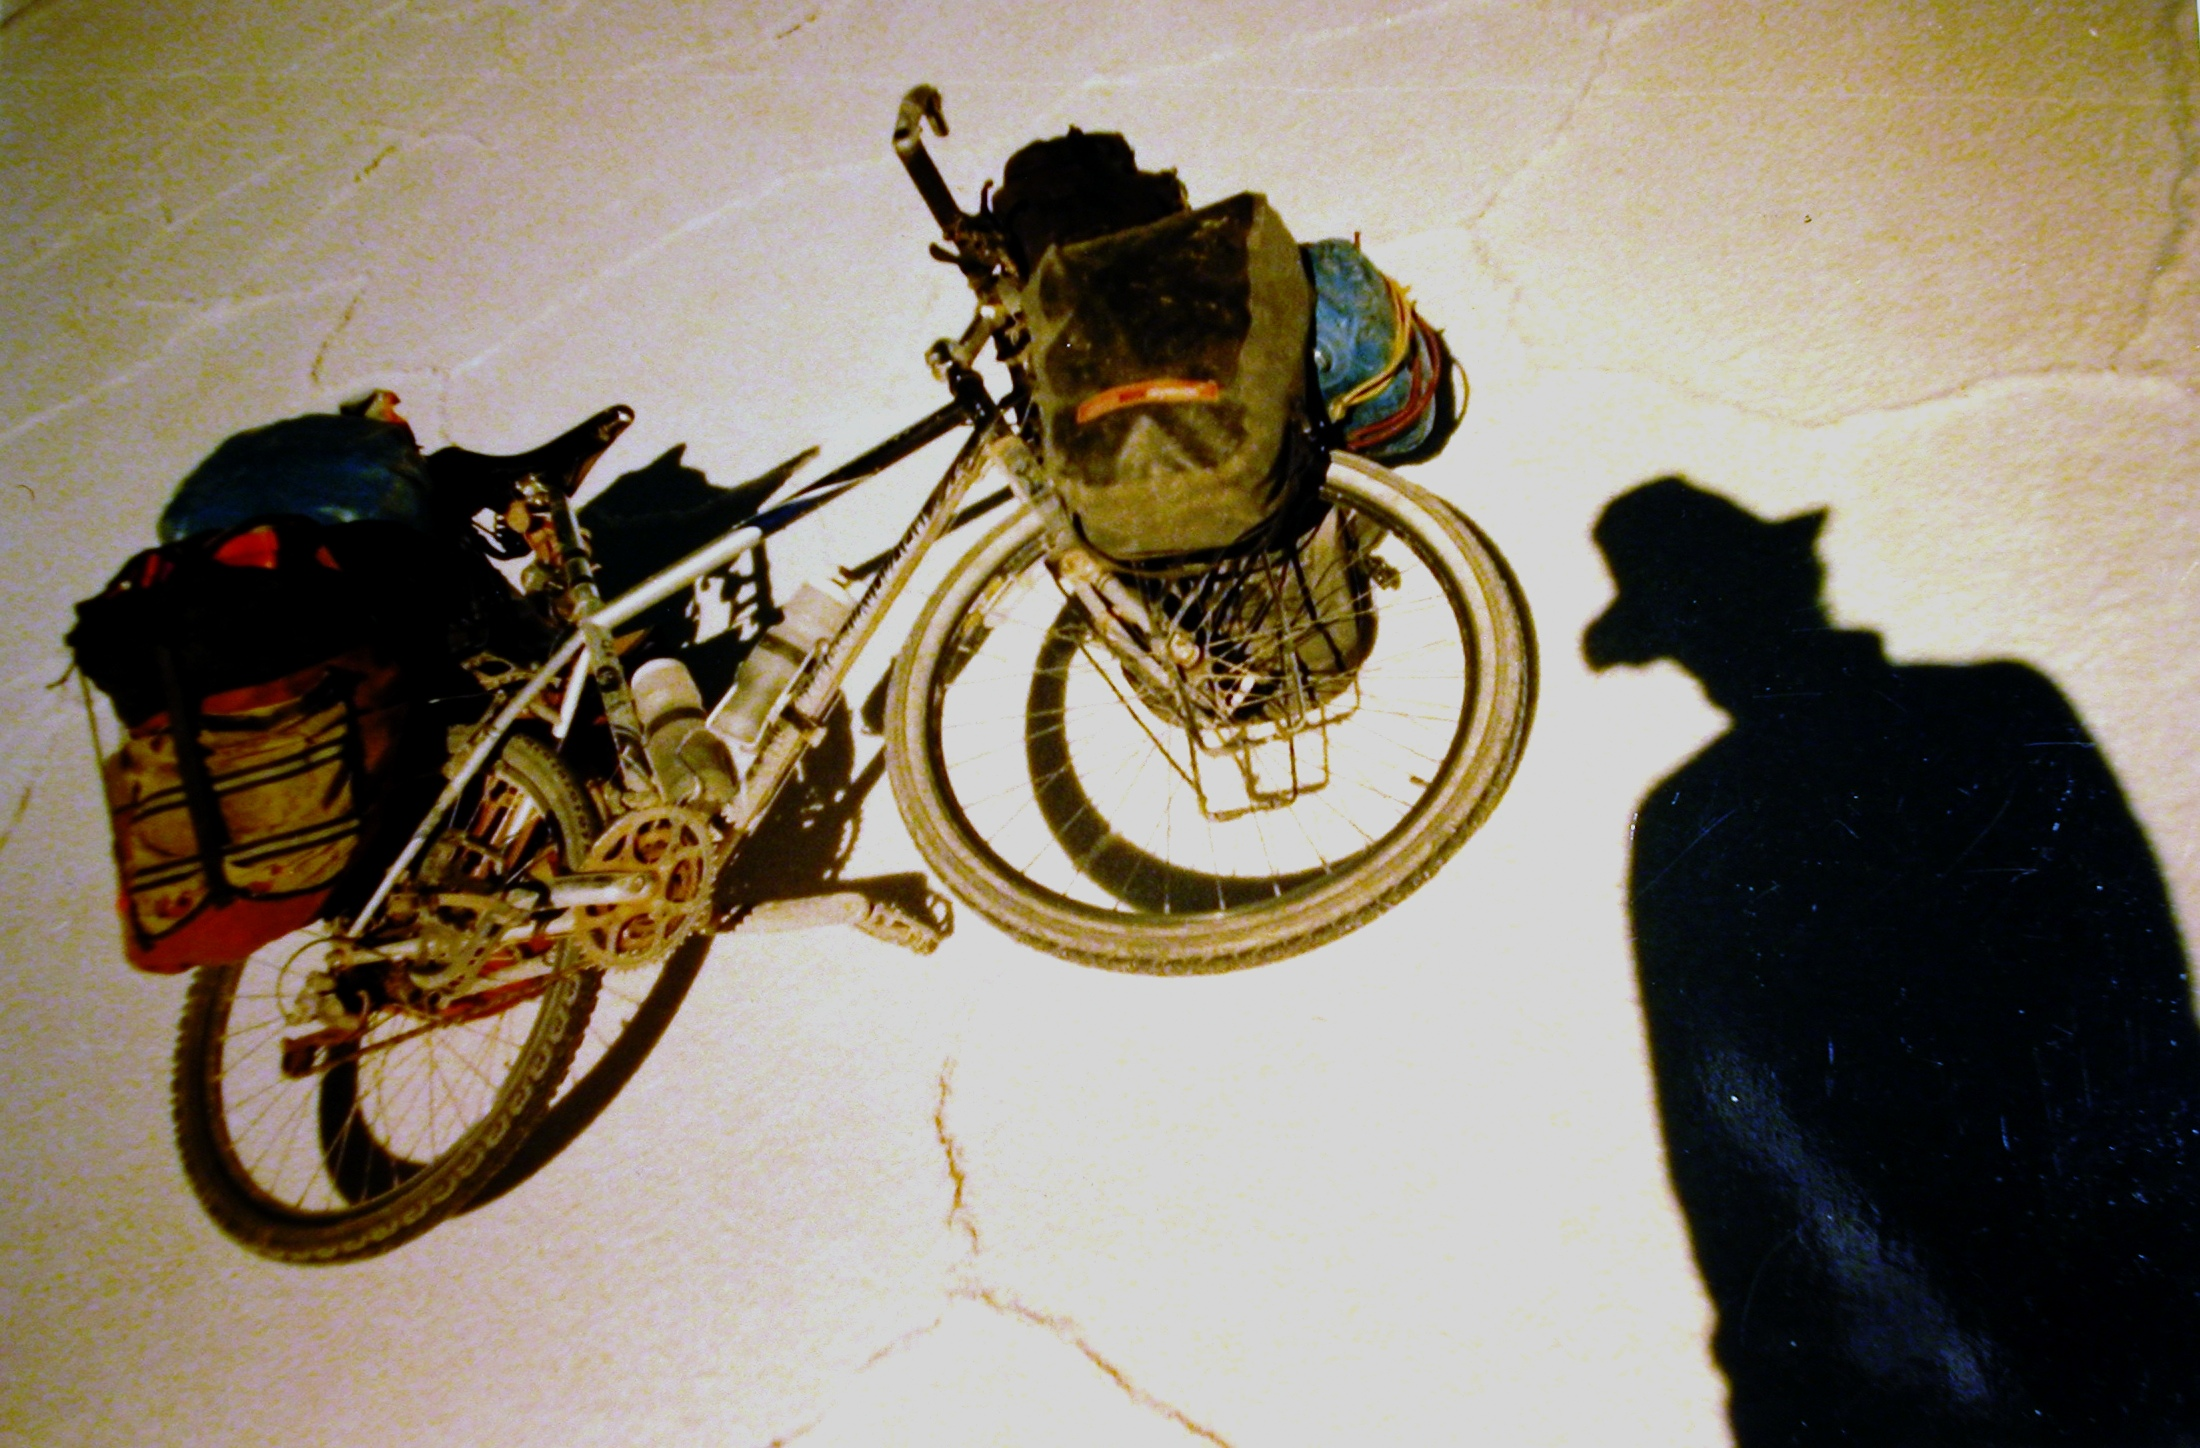 A man's shadow on the ground by a bicycle with bags strapped on the front and back